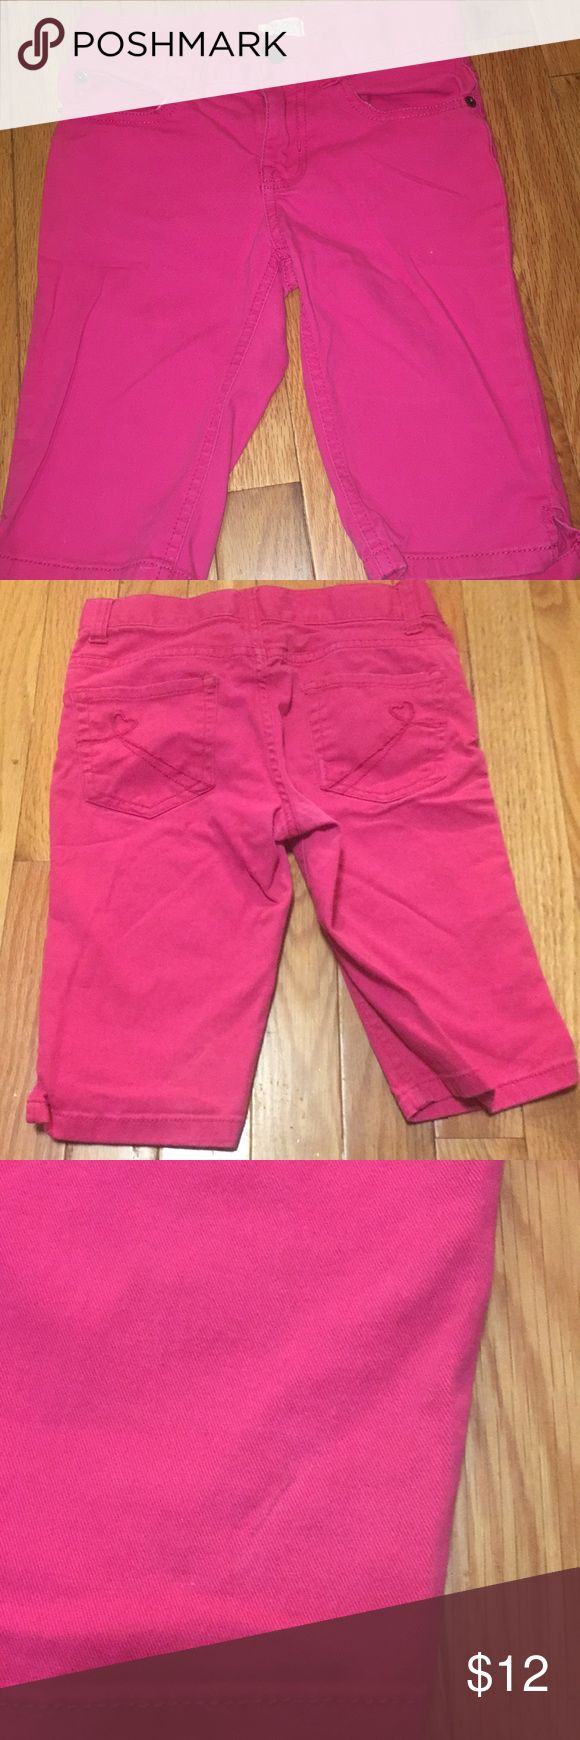 Girls hot pink Capri Girls size 10 slim hot pink capris from children place. One small ink mark on back as shown in picture Children's Place Bottoms Casual